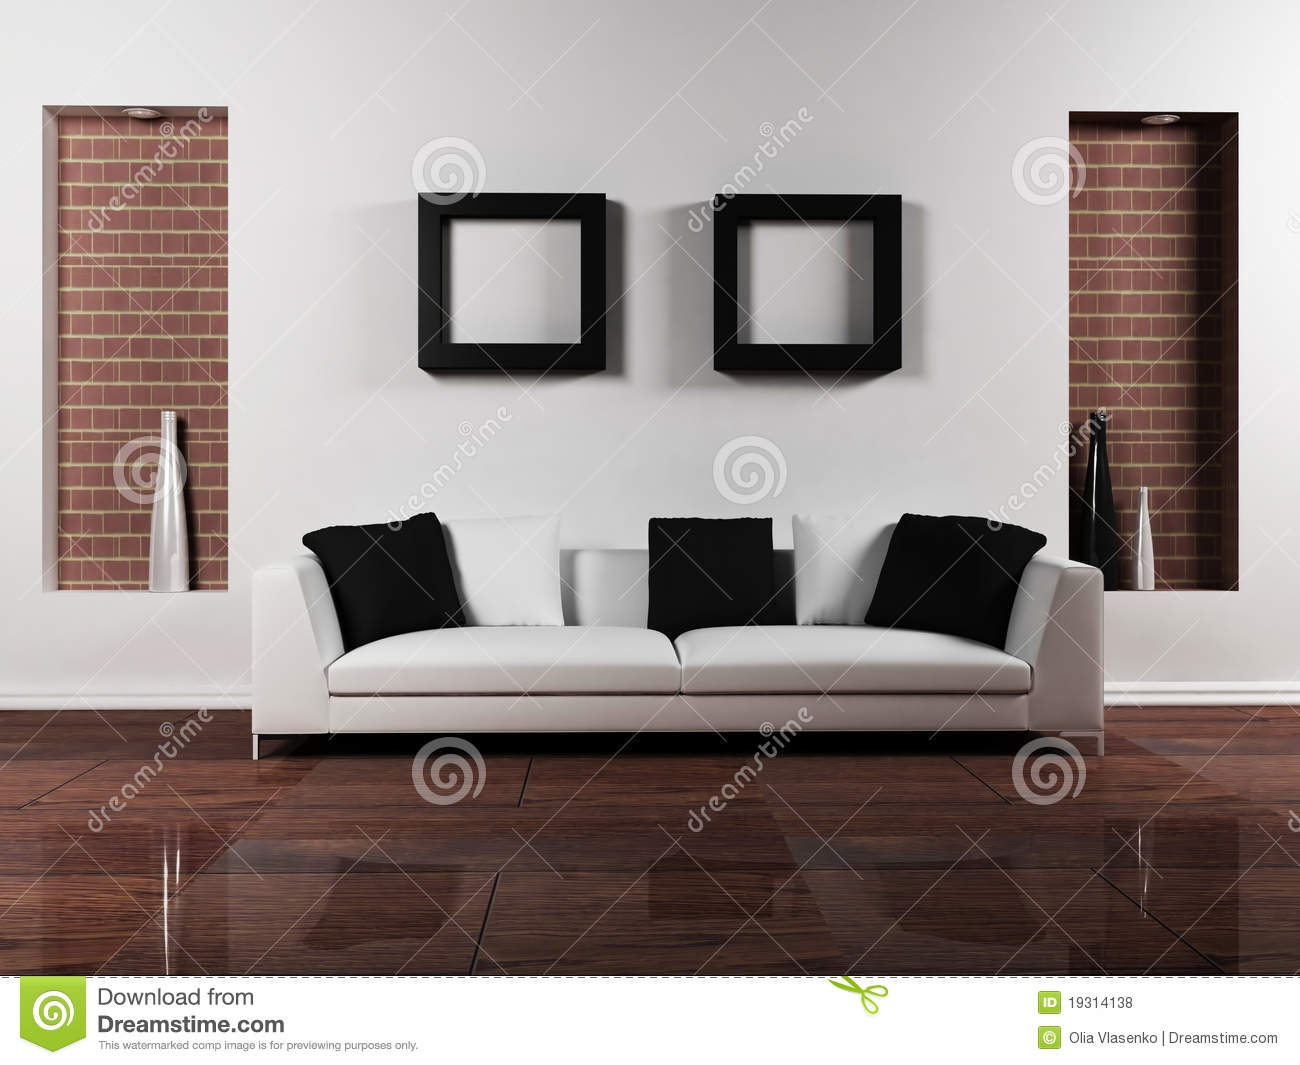 Modern interior design of living room royalty free stock - Room interior designs ...